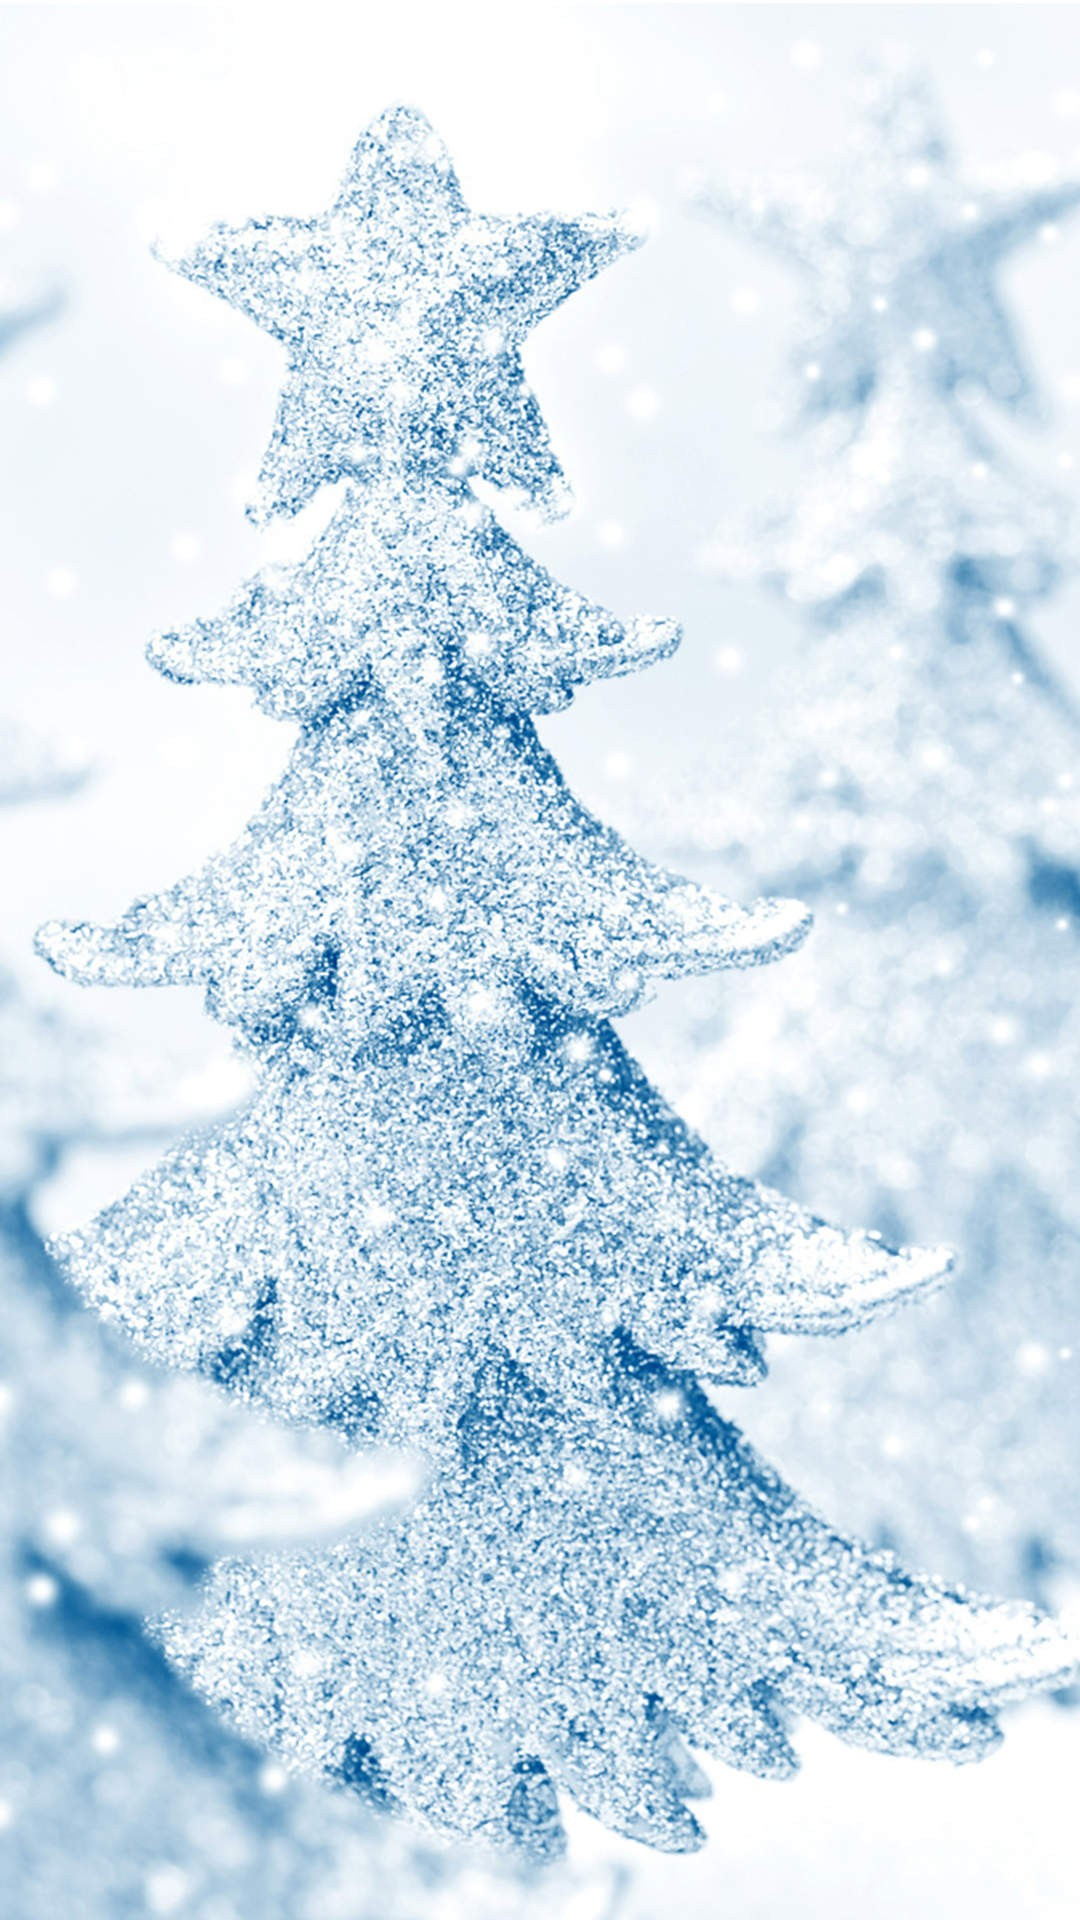 Snow Christmas Tree Iphone Wallpaper